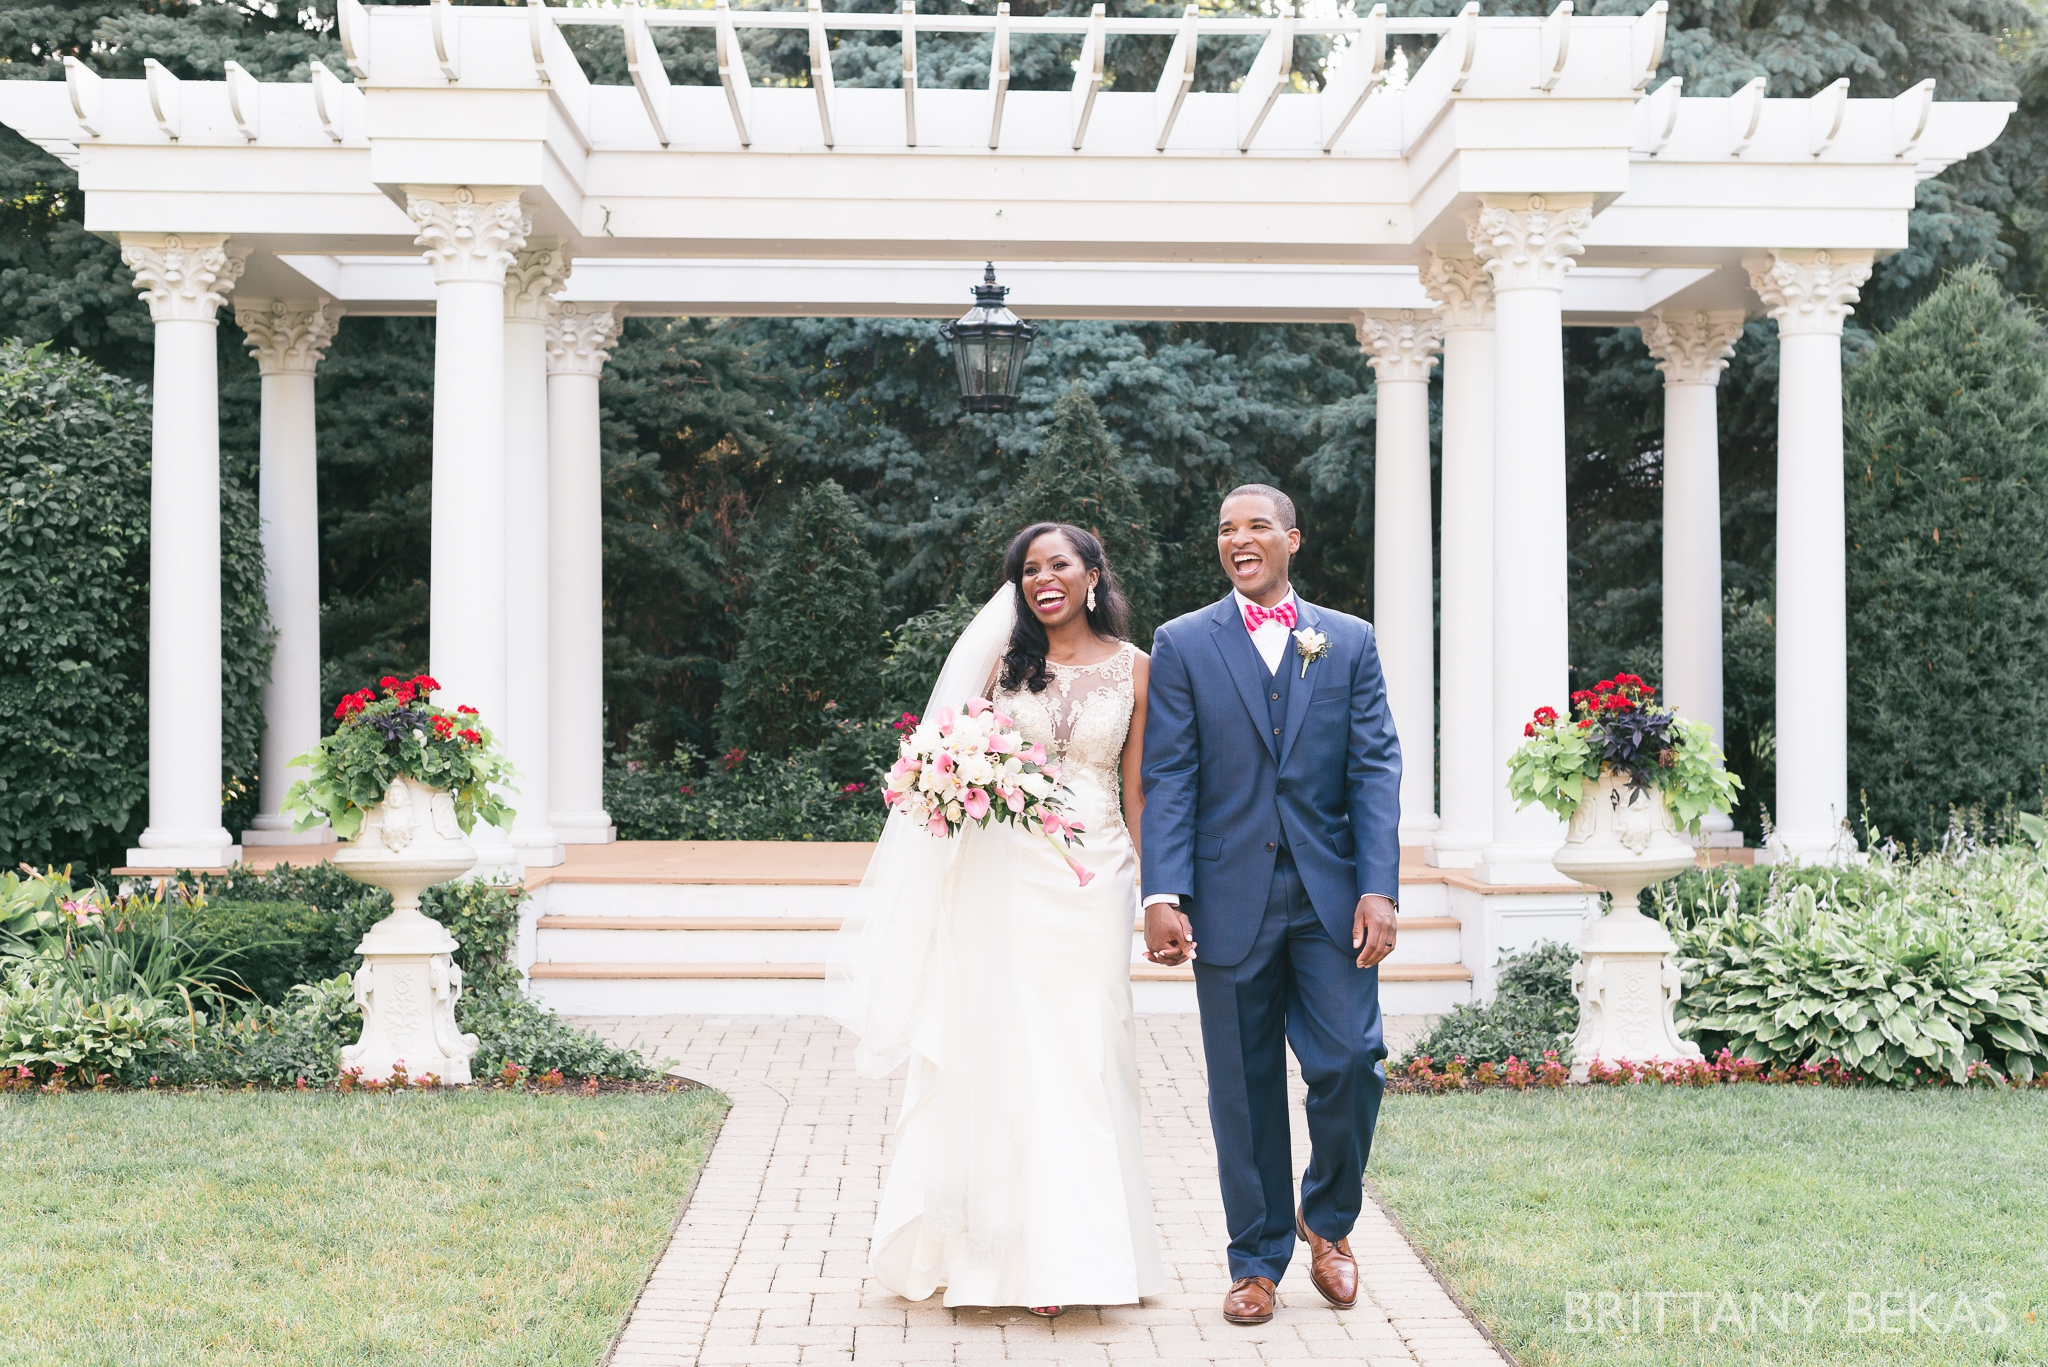 Patrick Haley Mansion Wedding - Brittany Bekas Photography_0026